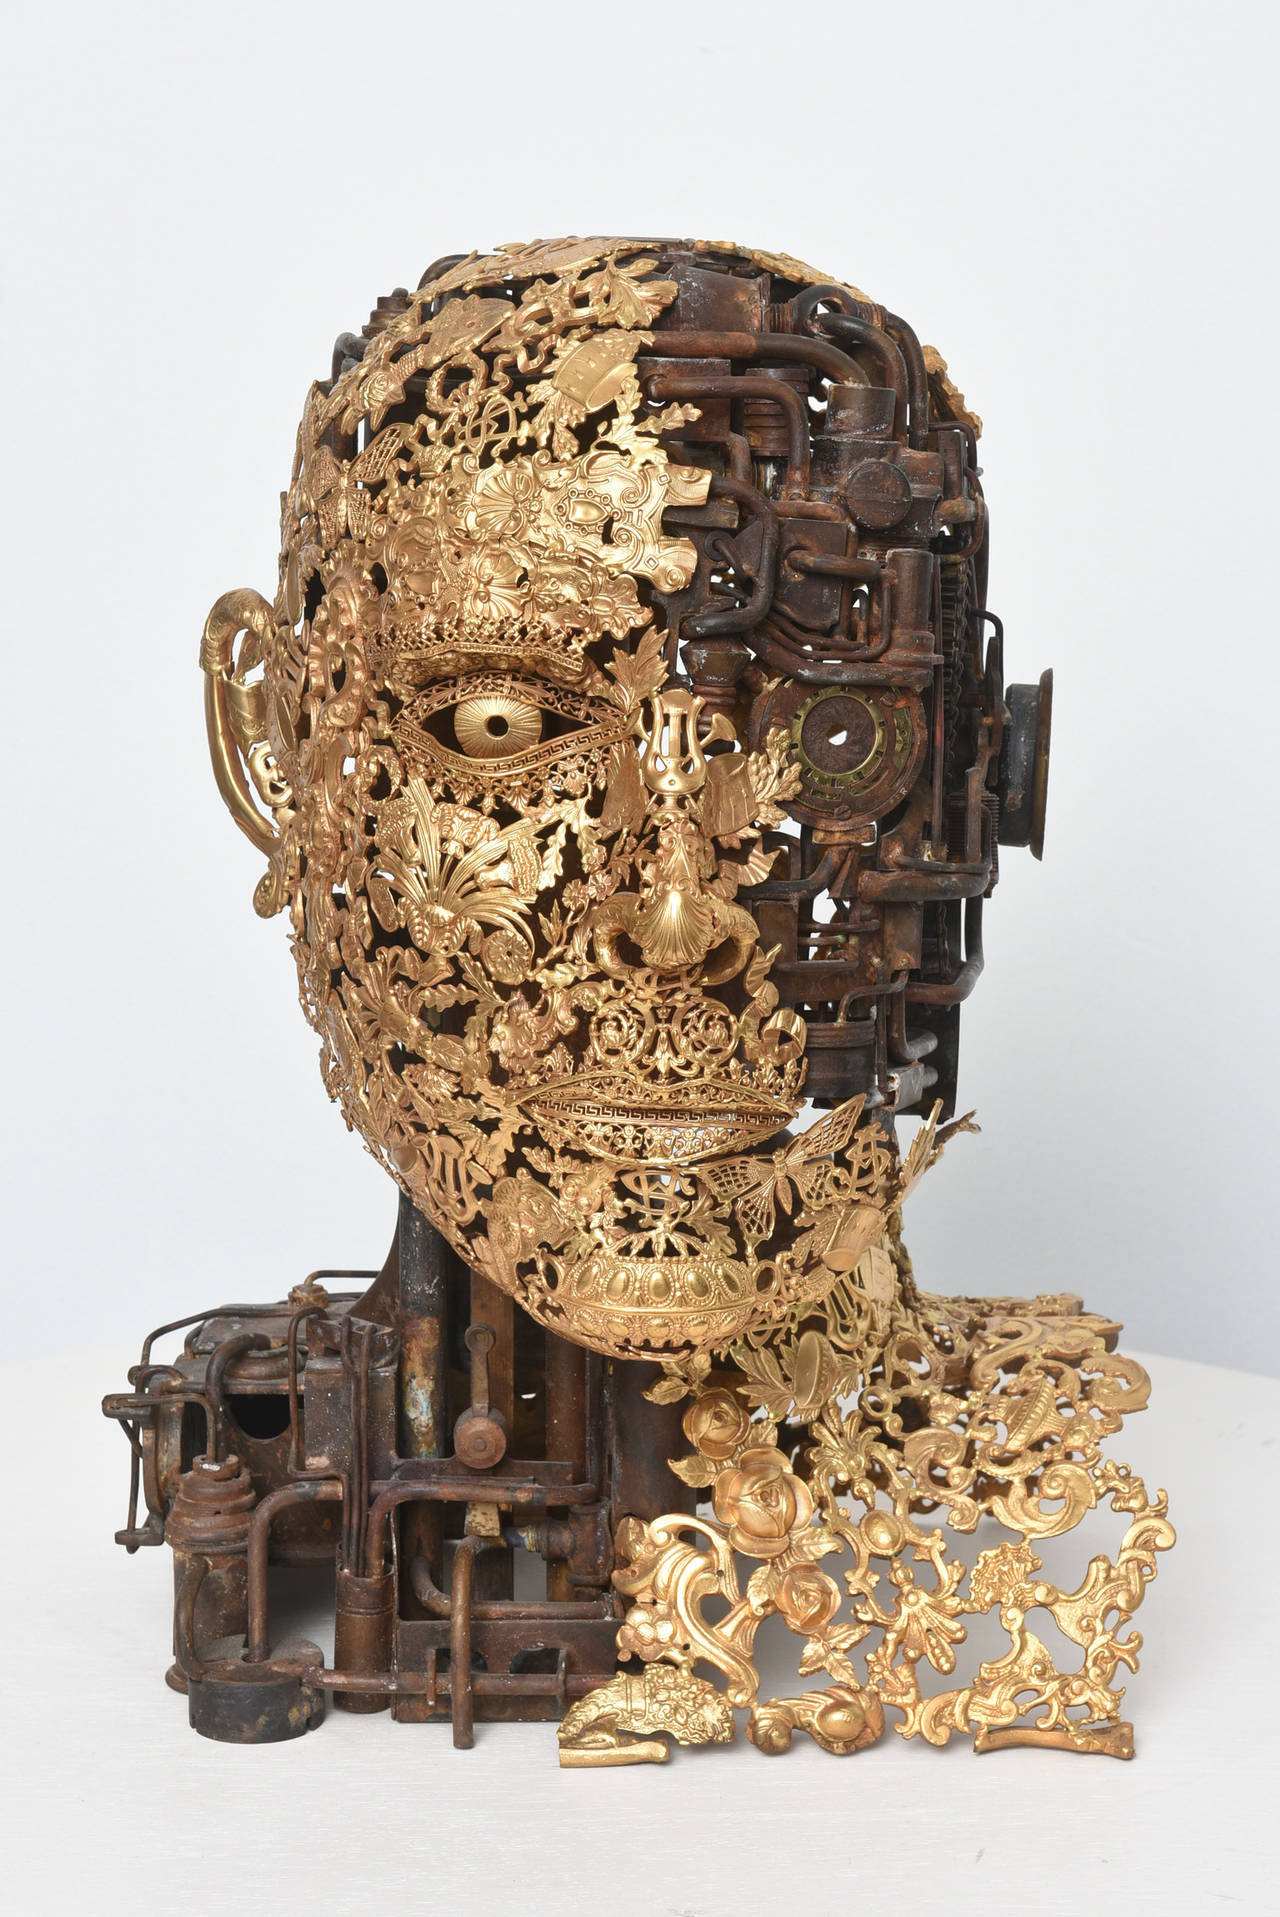 Bronze Sculpture by a very talented artist, Alain Bellino, made of bronze ornaments welded together. The nobility of these materials is sublimated, each one is a fragment of antique memory part of a new ultra-contemporary creation.